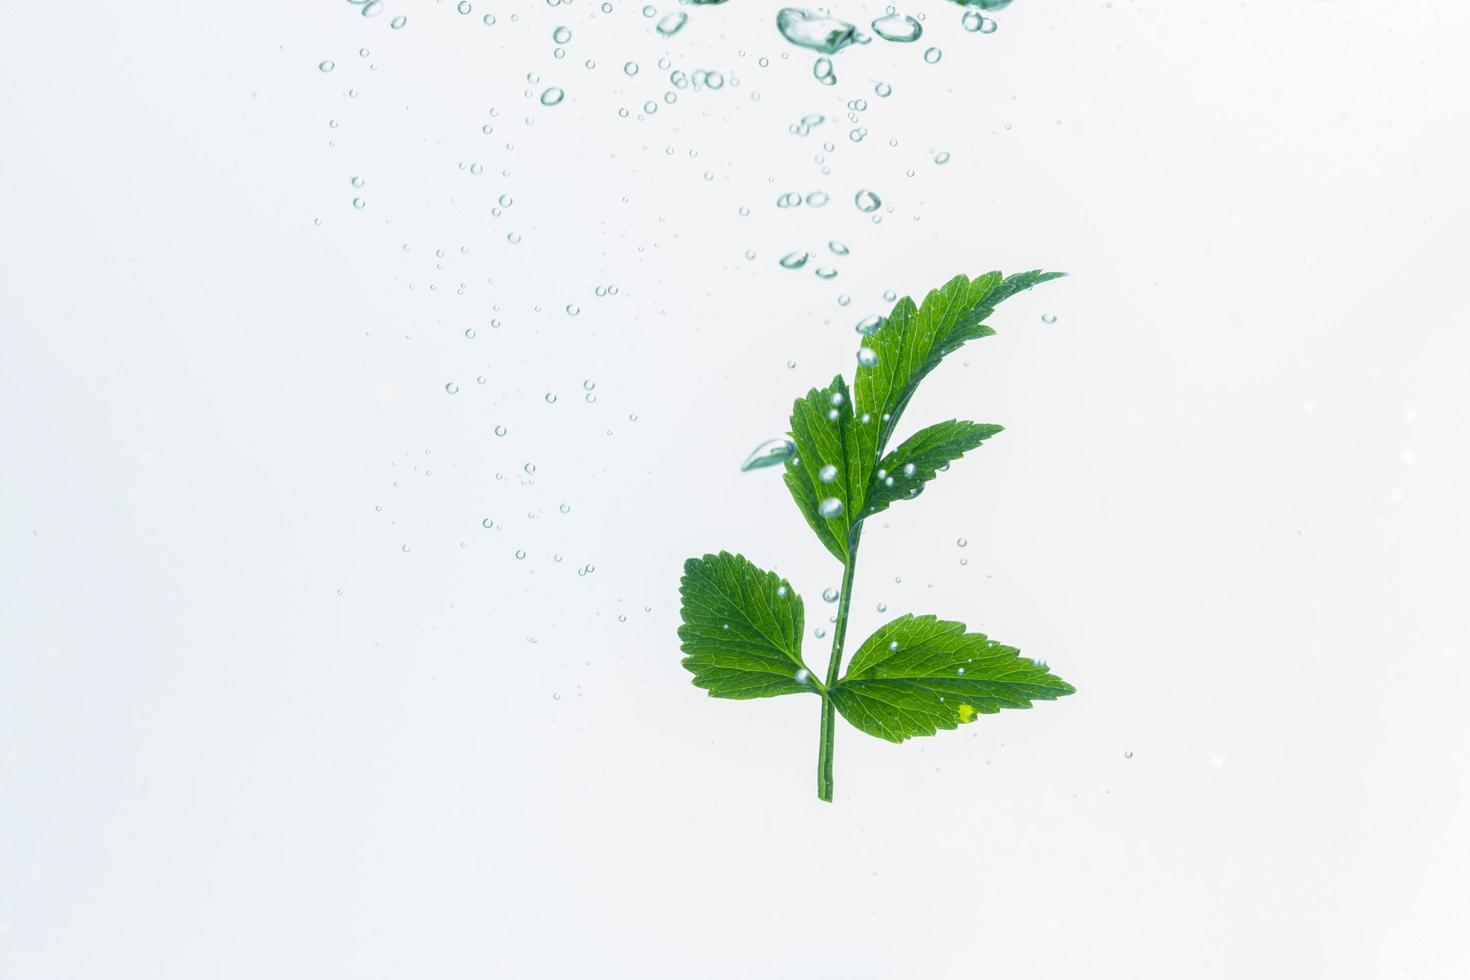 Green plant and bubbles in the water photo